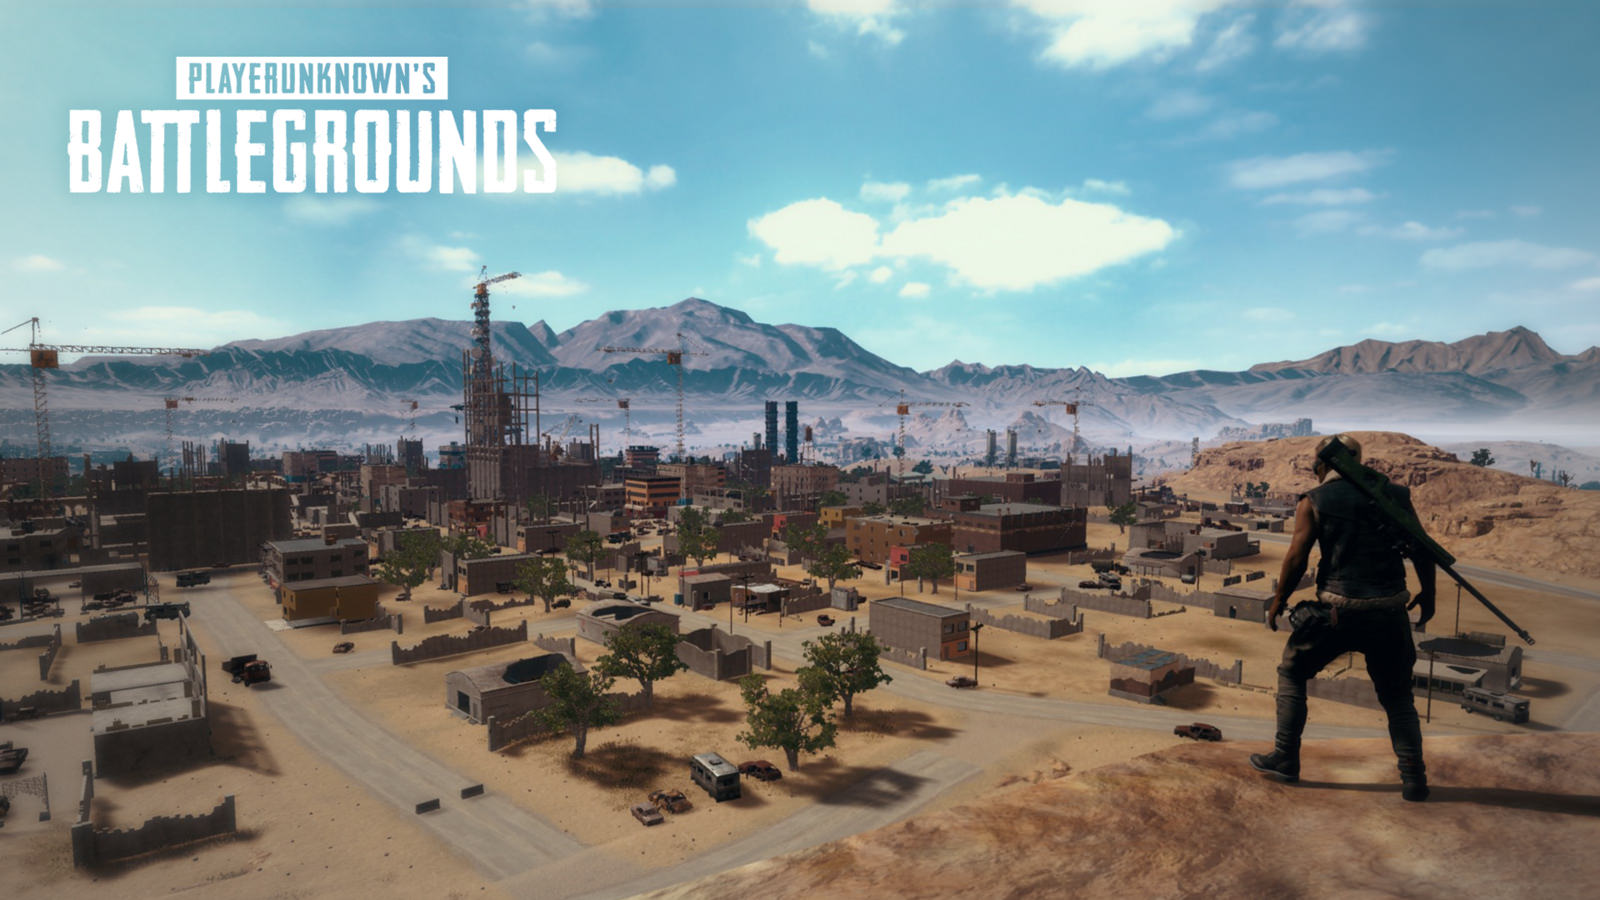 PlayerUnknown's Battlegrounds Releasing For Playstation 4 On Dec. 7th